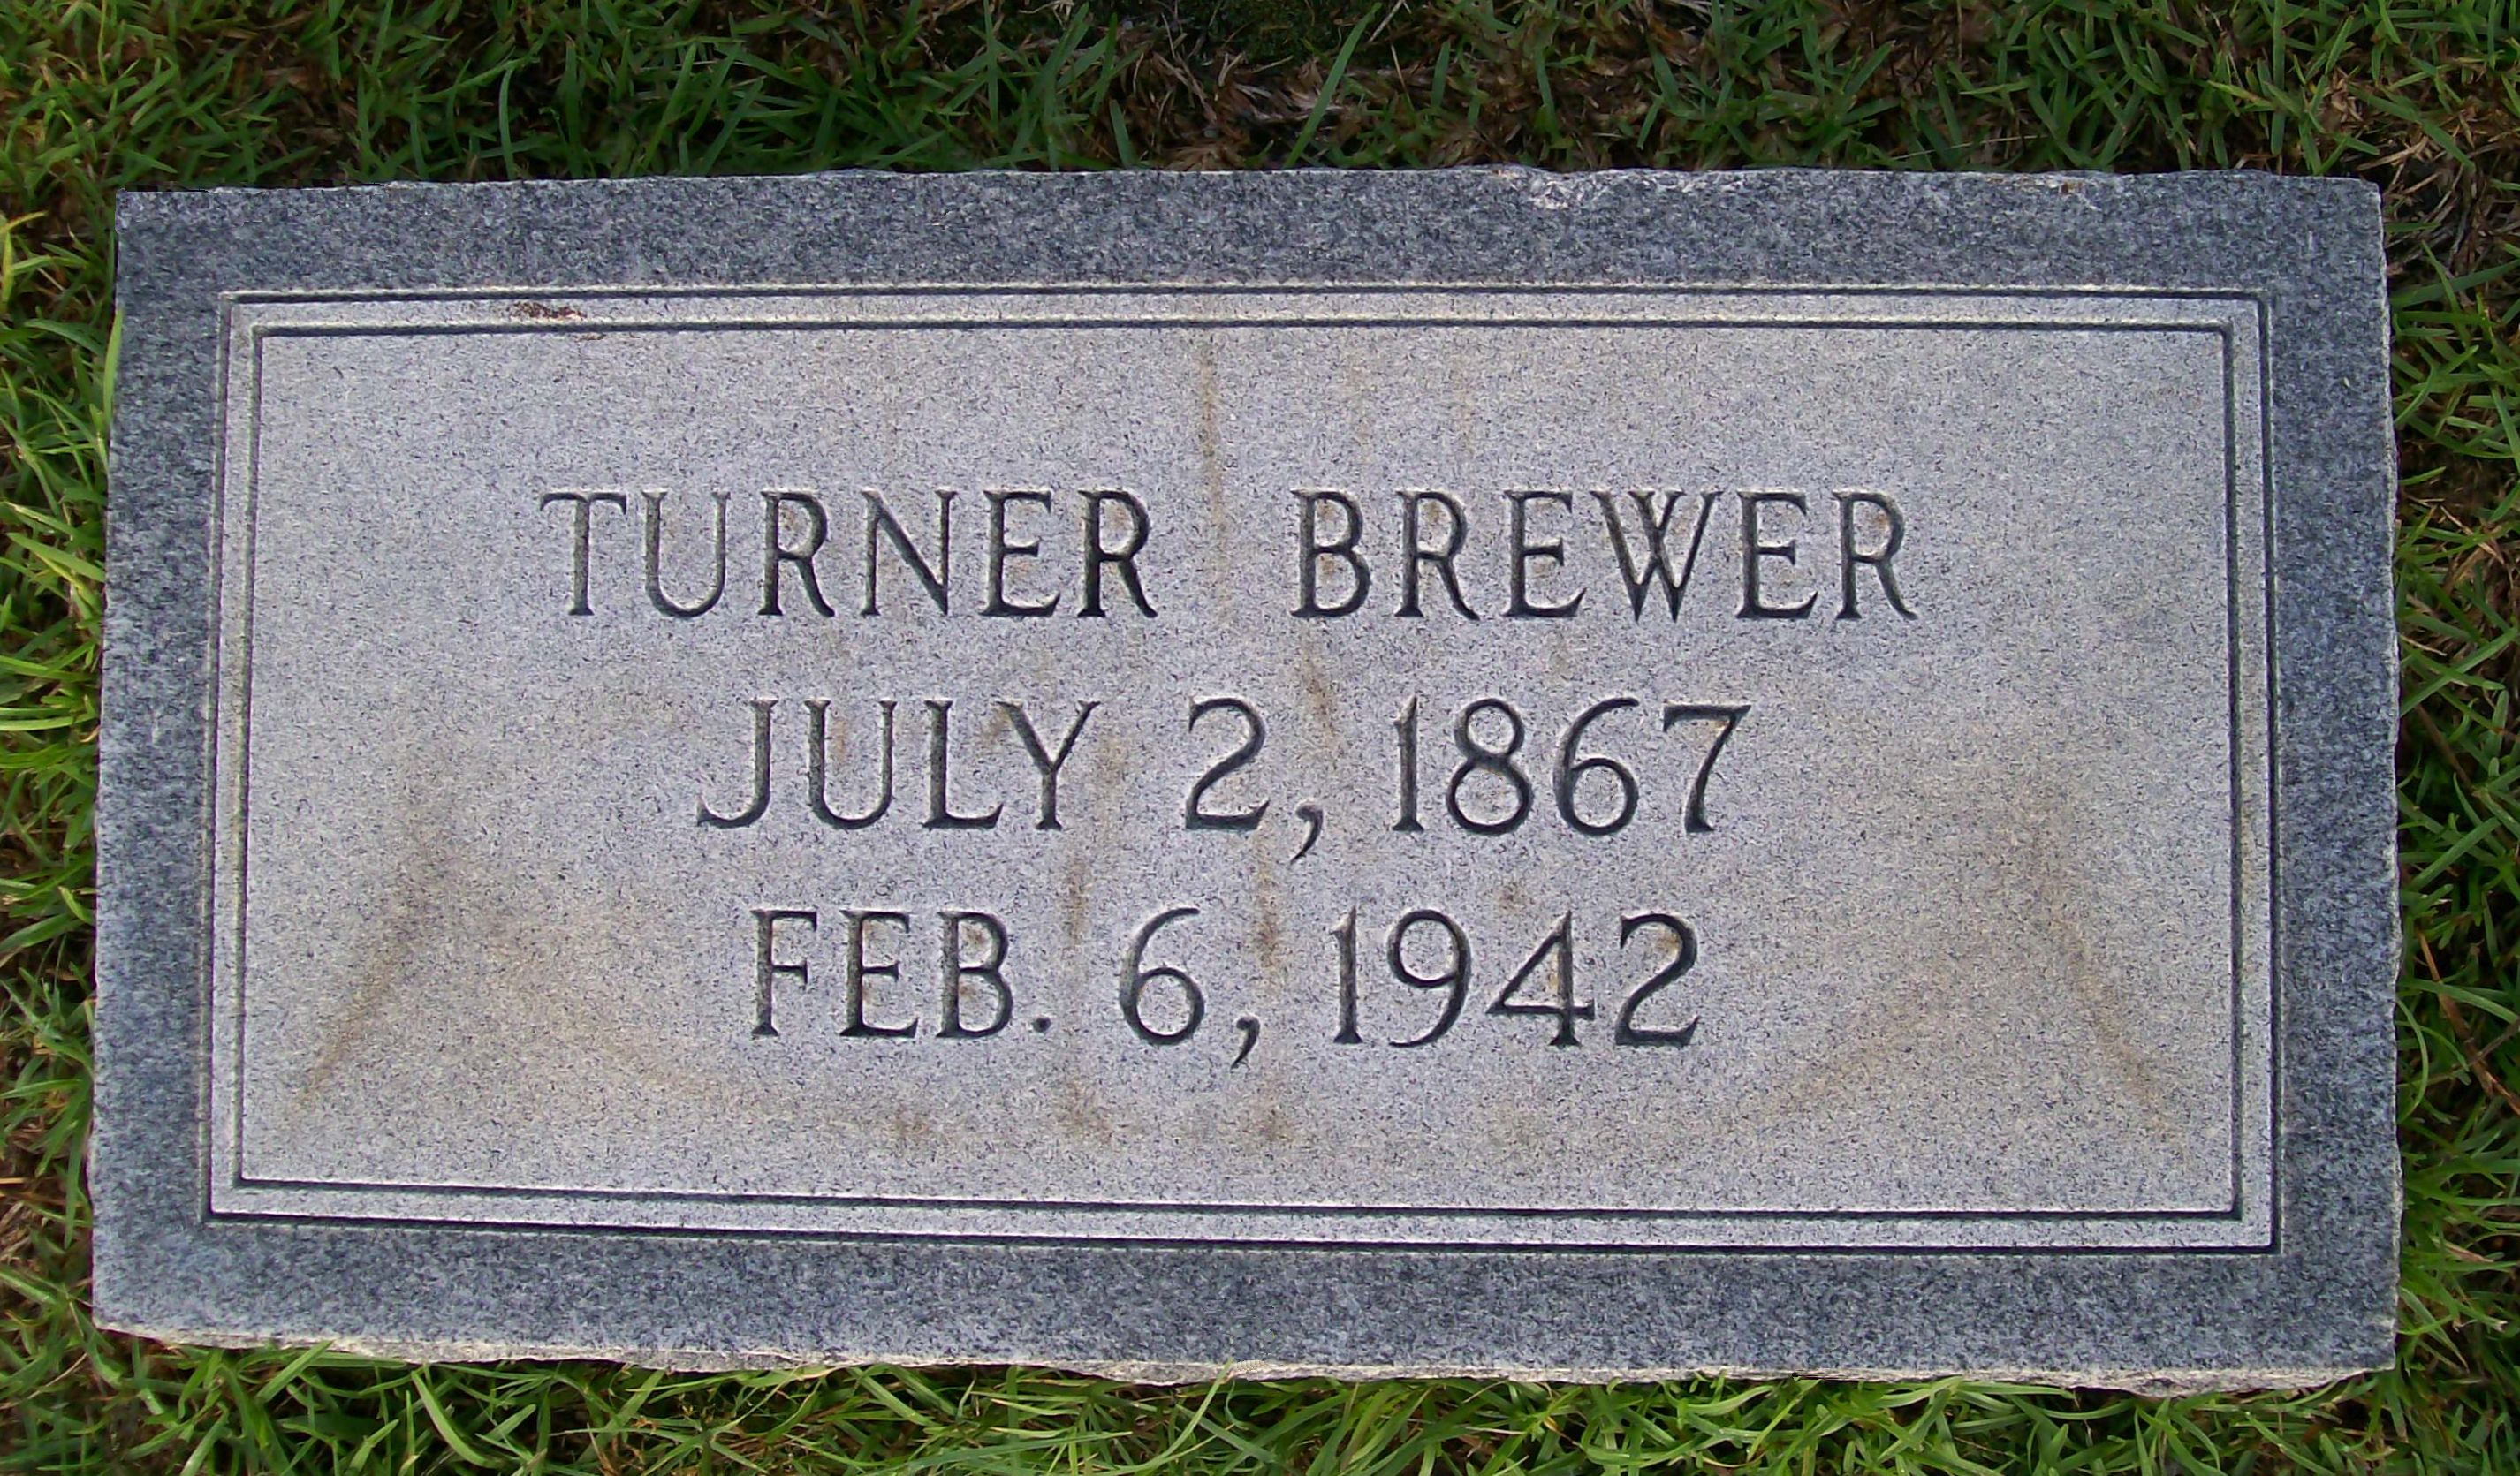 Turner Brewer